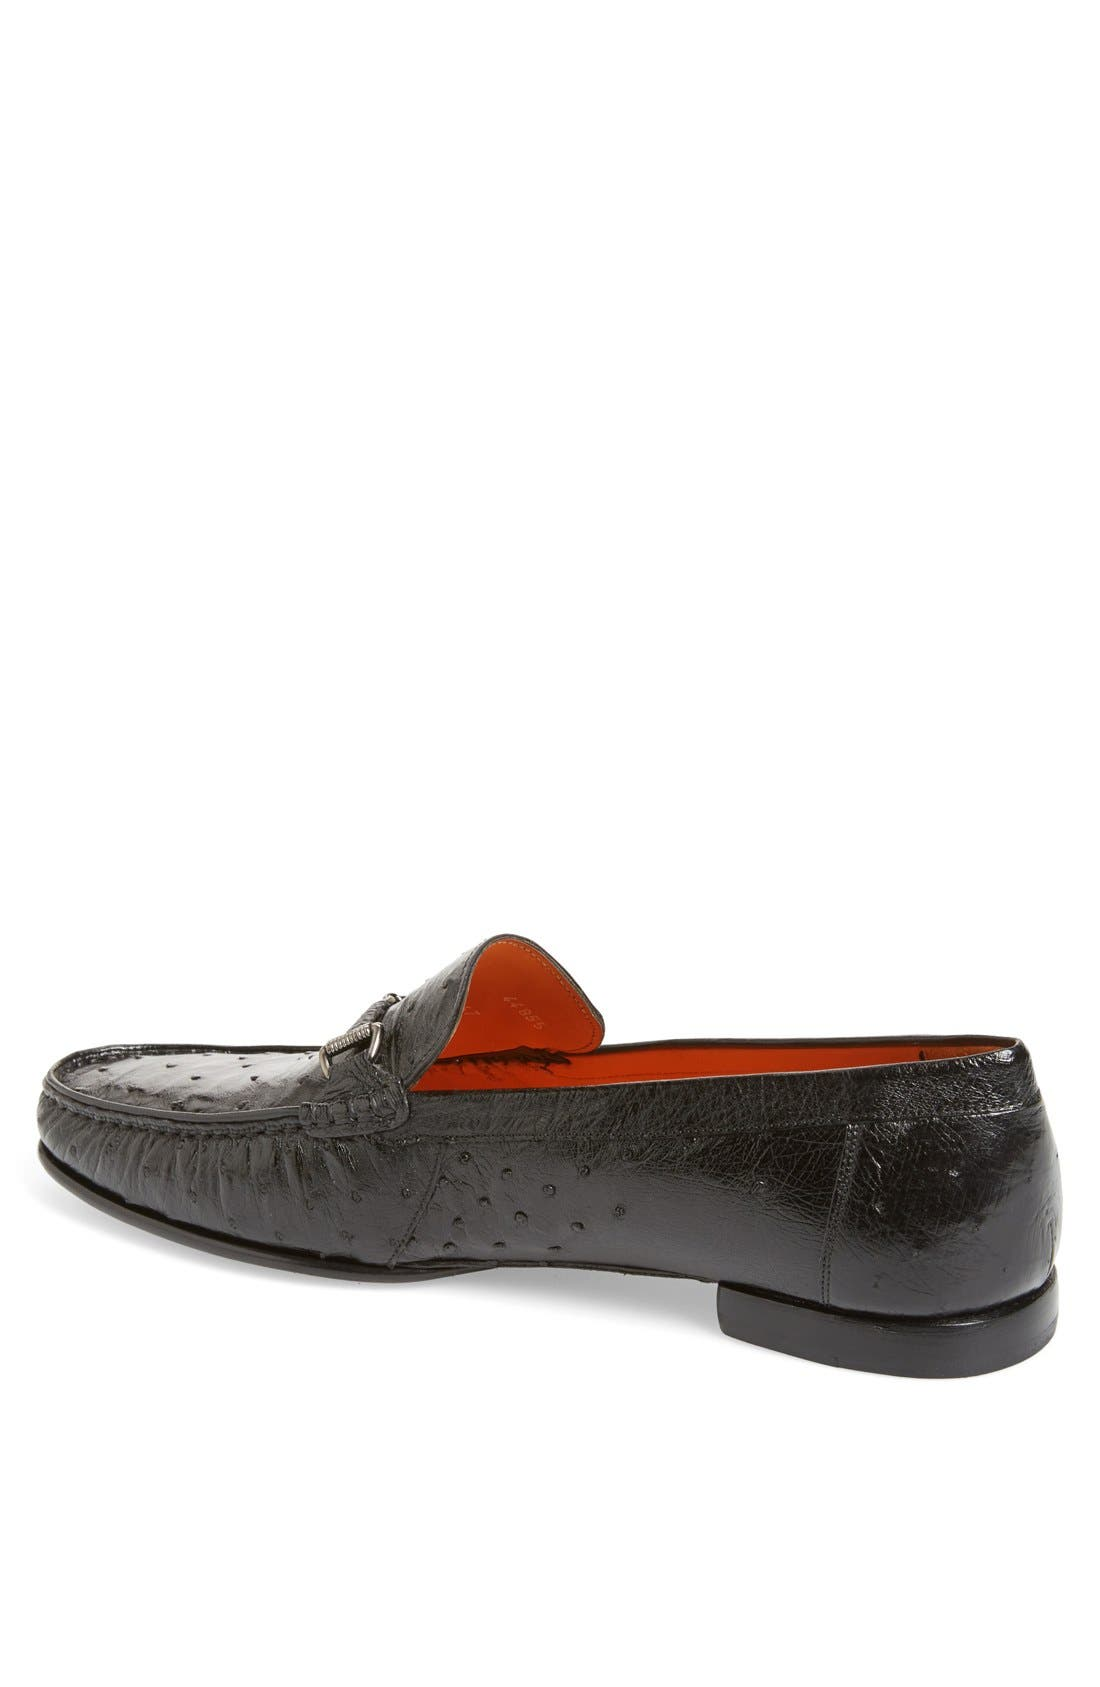 'Vittorio' Ostrich Leather Bit Loafer,                             Alternate thumbnail 2, color,                             BLACK